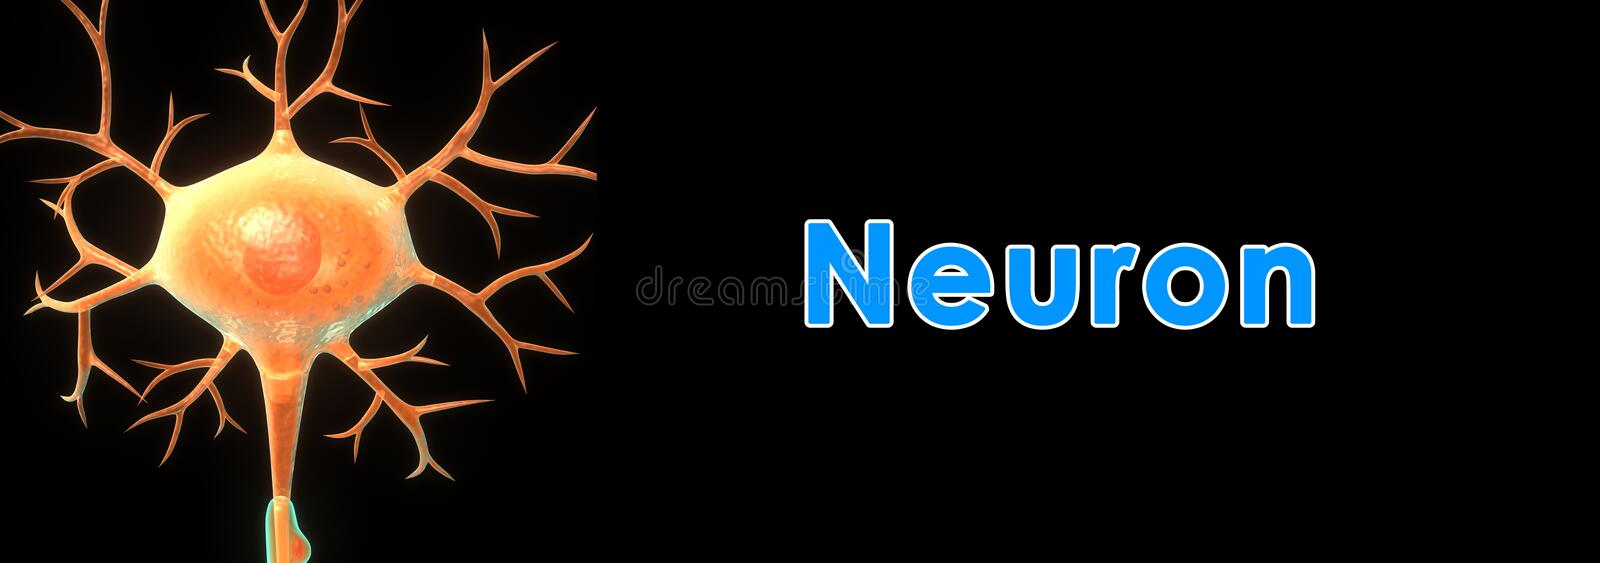 neuron vektor illustrationer